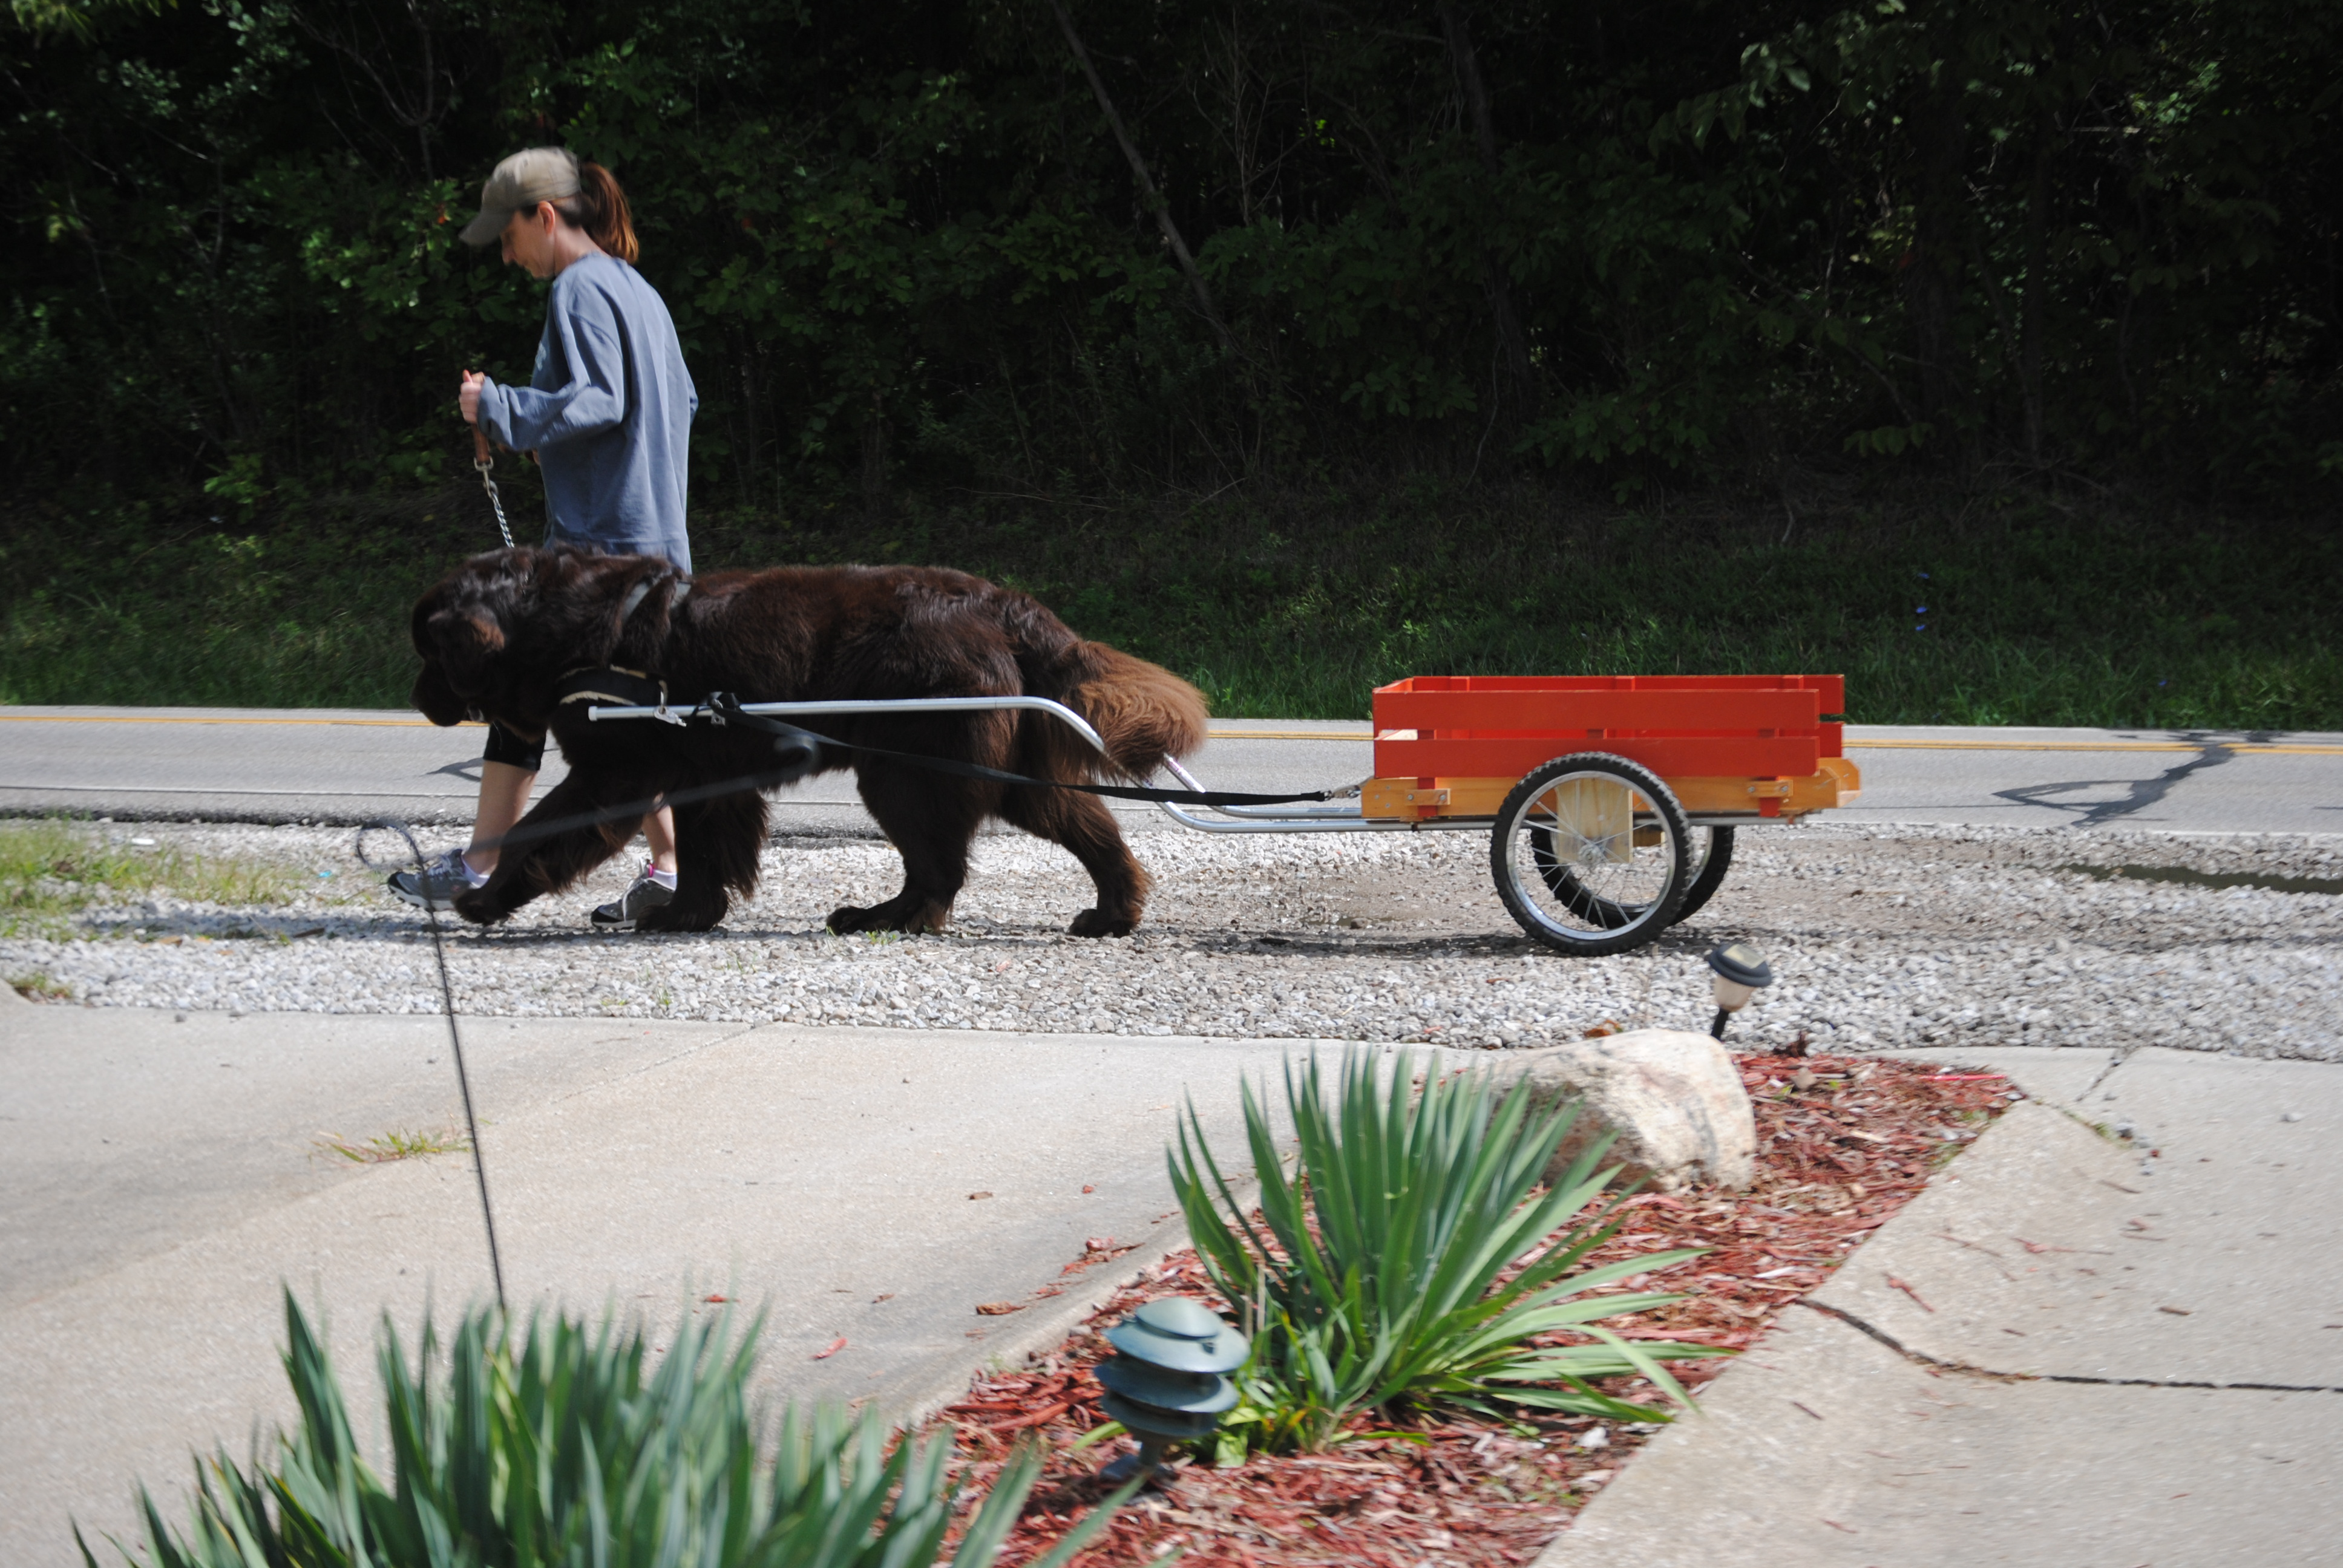 Carting With Your Dog 101 - My Brown Newfies